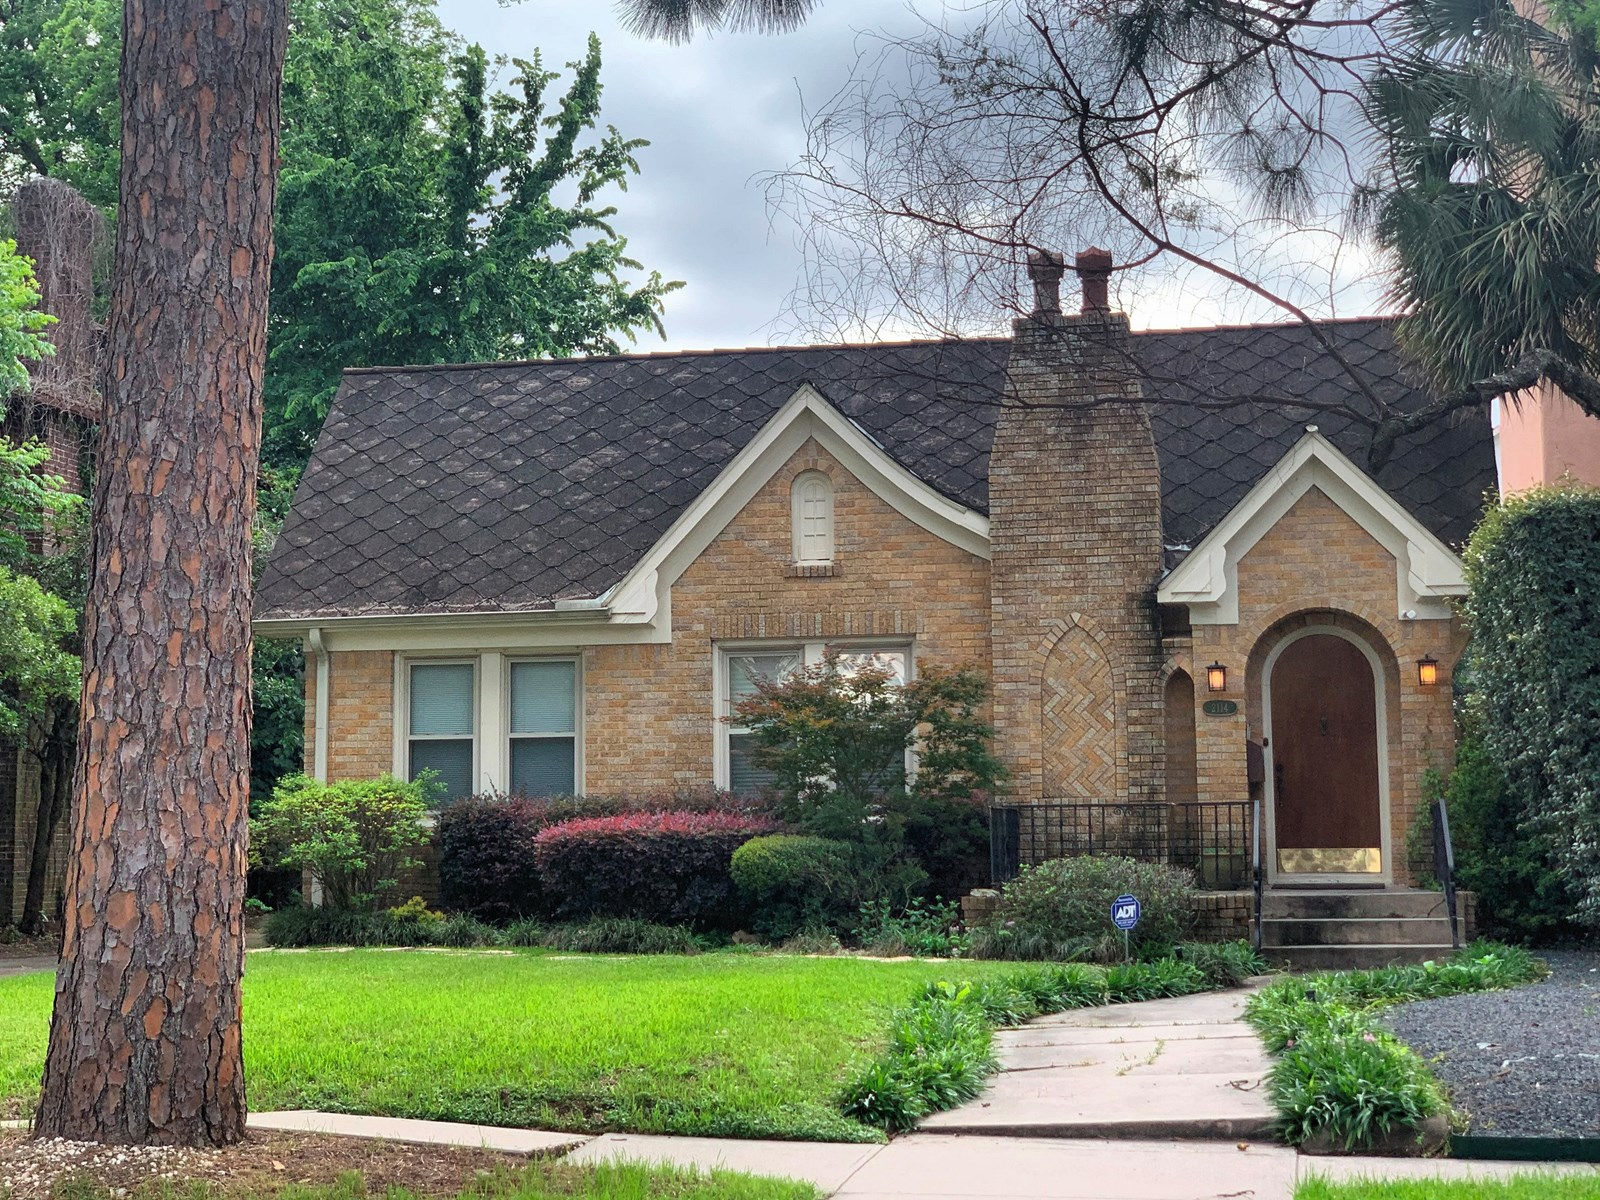 HOME FOR SALE HOUSTON TX | DESIRABLE AREA